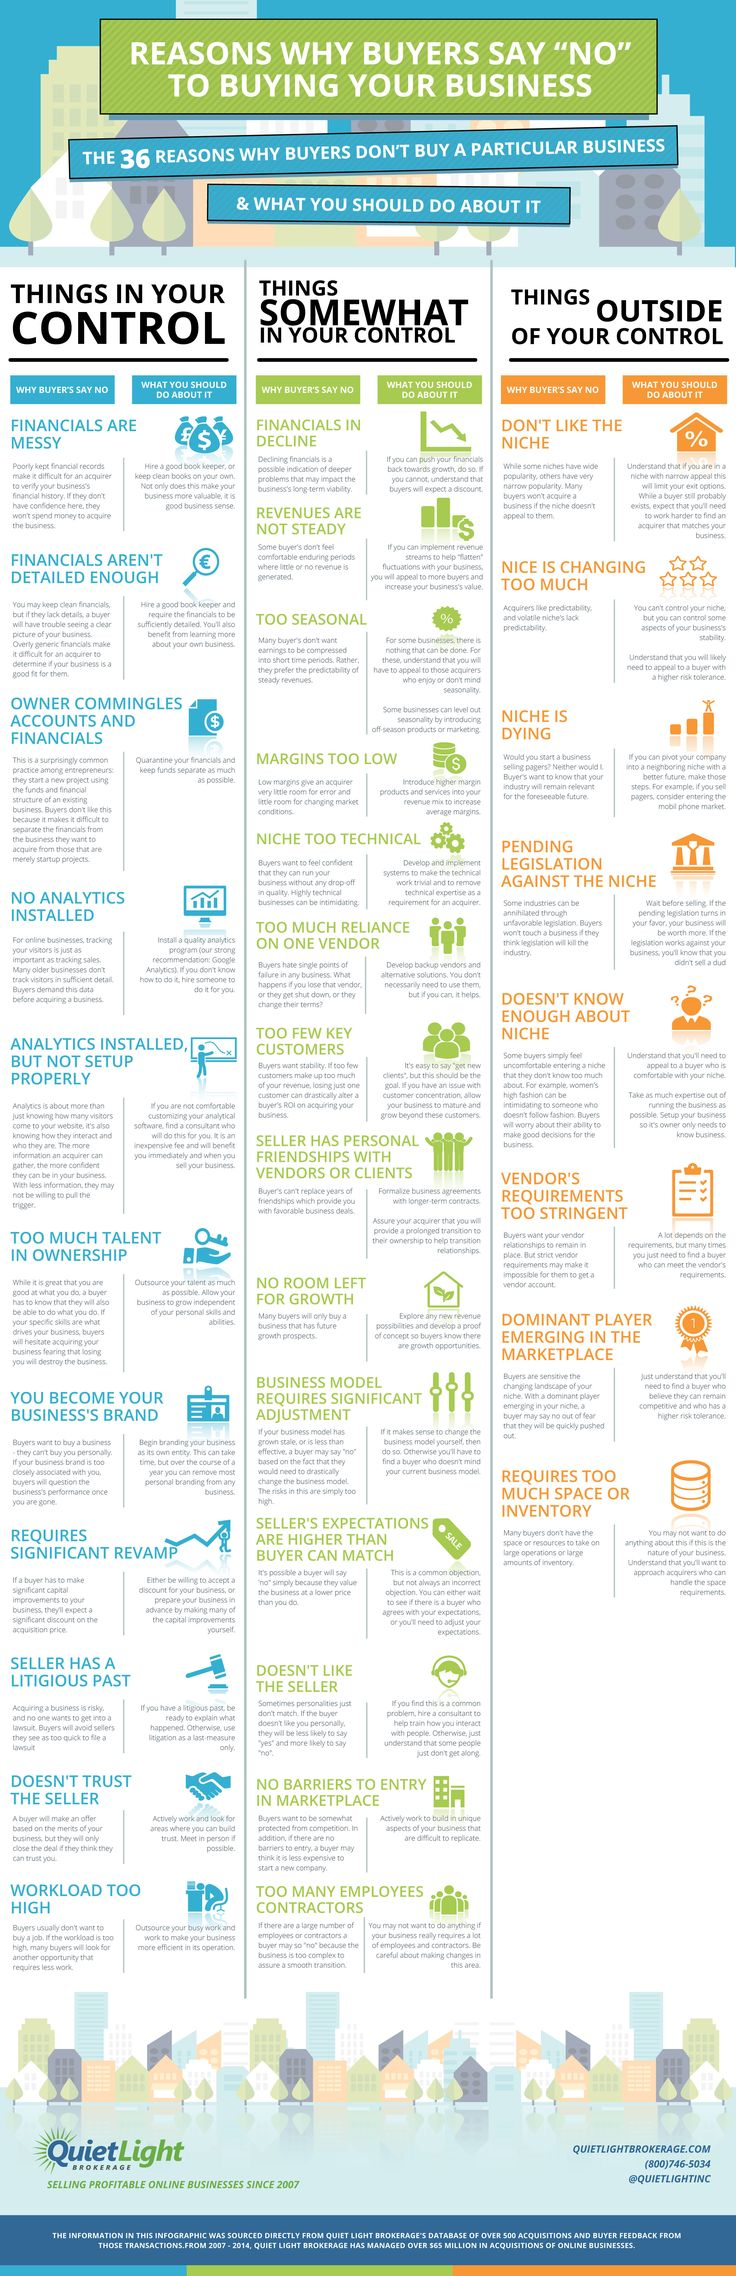 7 Reasons Why Your Business Will Never Be Acquired (and What You Can Do About It) -- Infographic